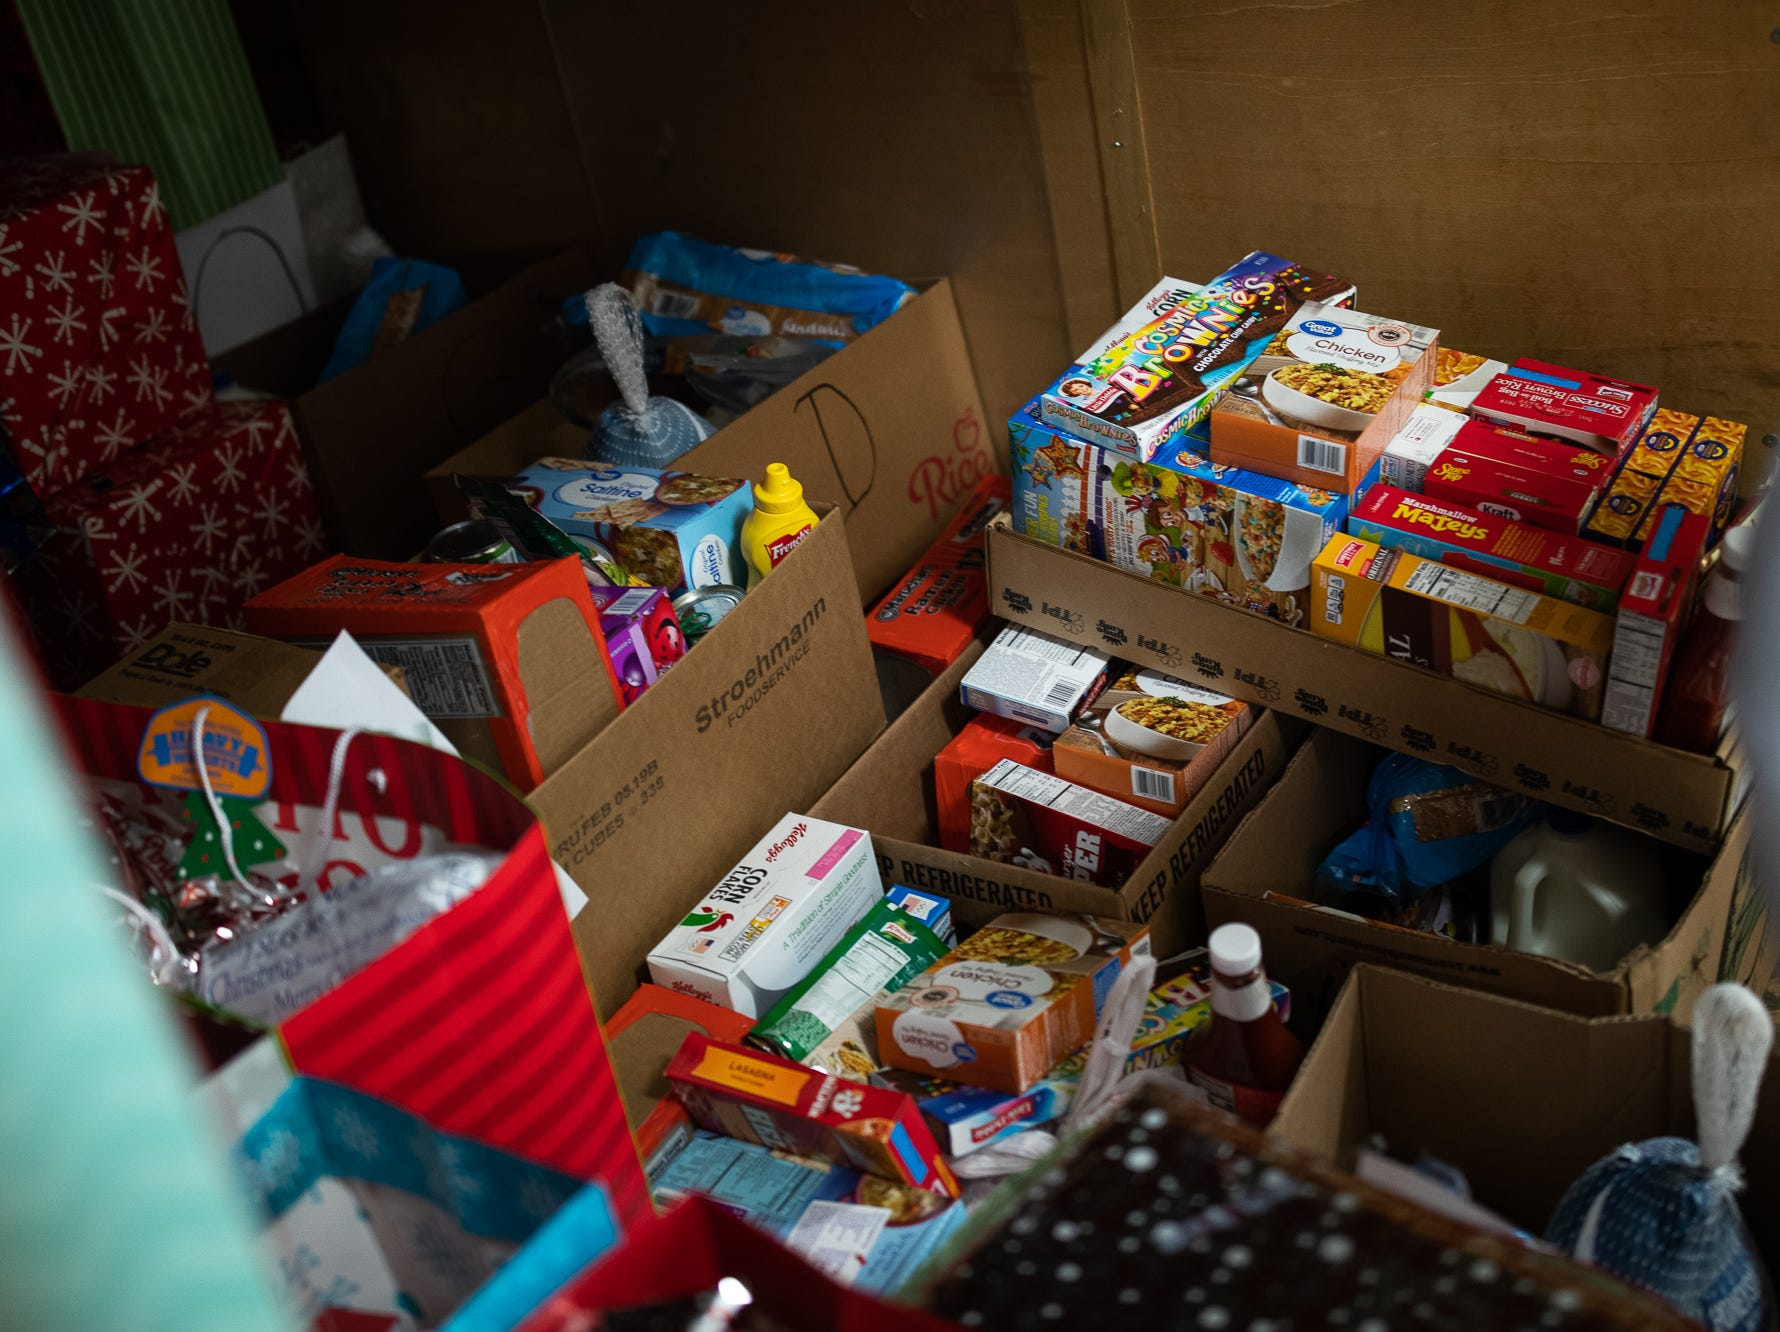 Presents are loaded in a trailer at the Southeastern Adams County Volunteer Emergency Services fire station during the S.A.V.E.S Project Santa, Saturday, Dec. 22, 2018, in McSherrystown Borough. The S.A.V.E.S Project Santa donated food, toys, and clothing to 12 local families in need.